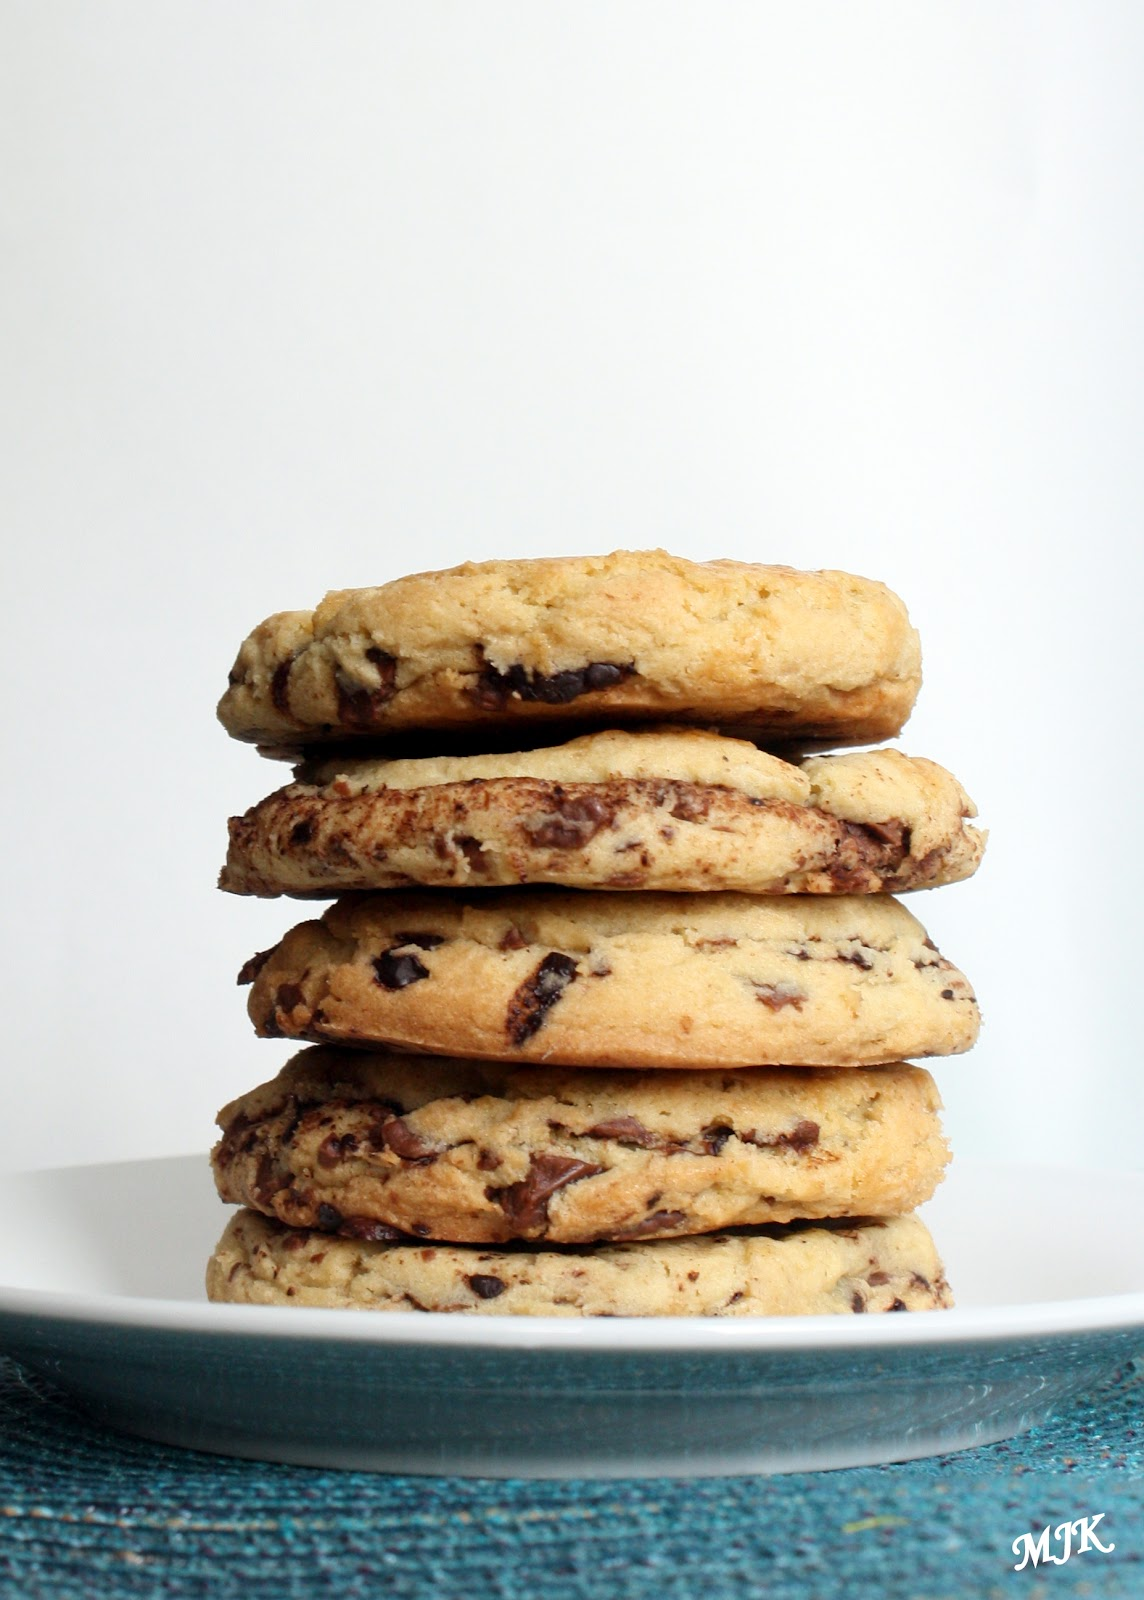 Melissa's Cuisine: Thousand Layer Chocolate Chip Cookies